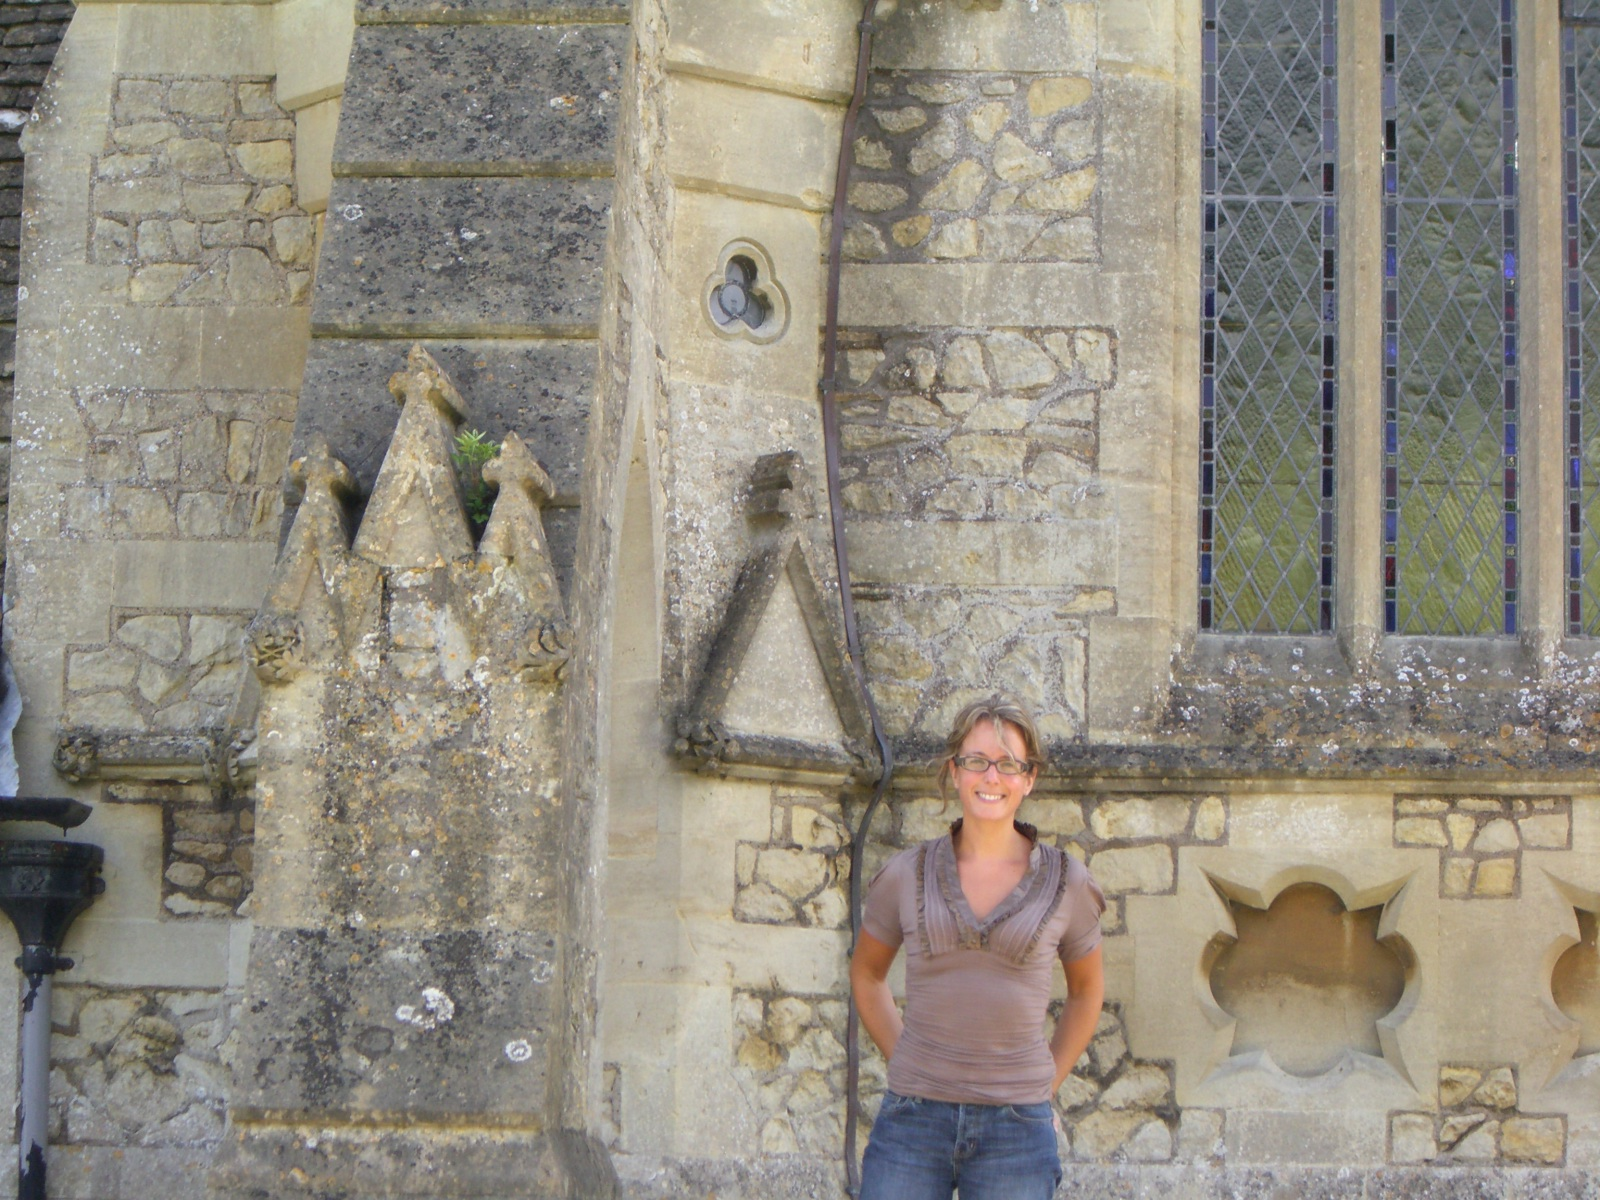 V by church outside Bath, England (apologies to the owner of the tombstone I had to use to prop up my camera)